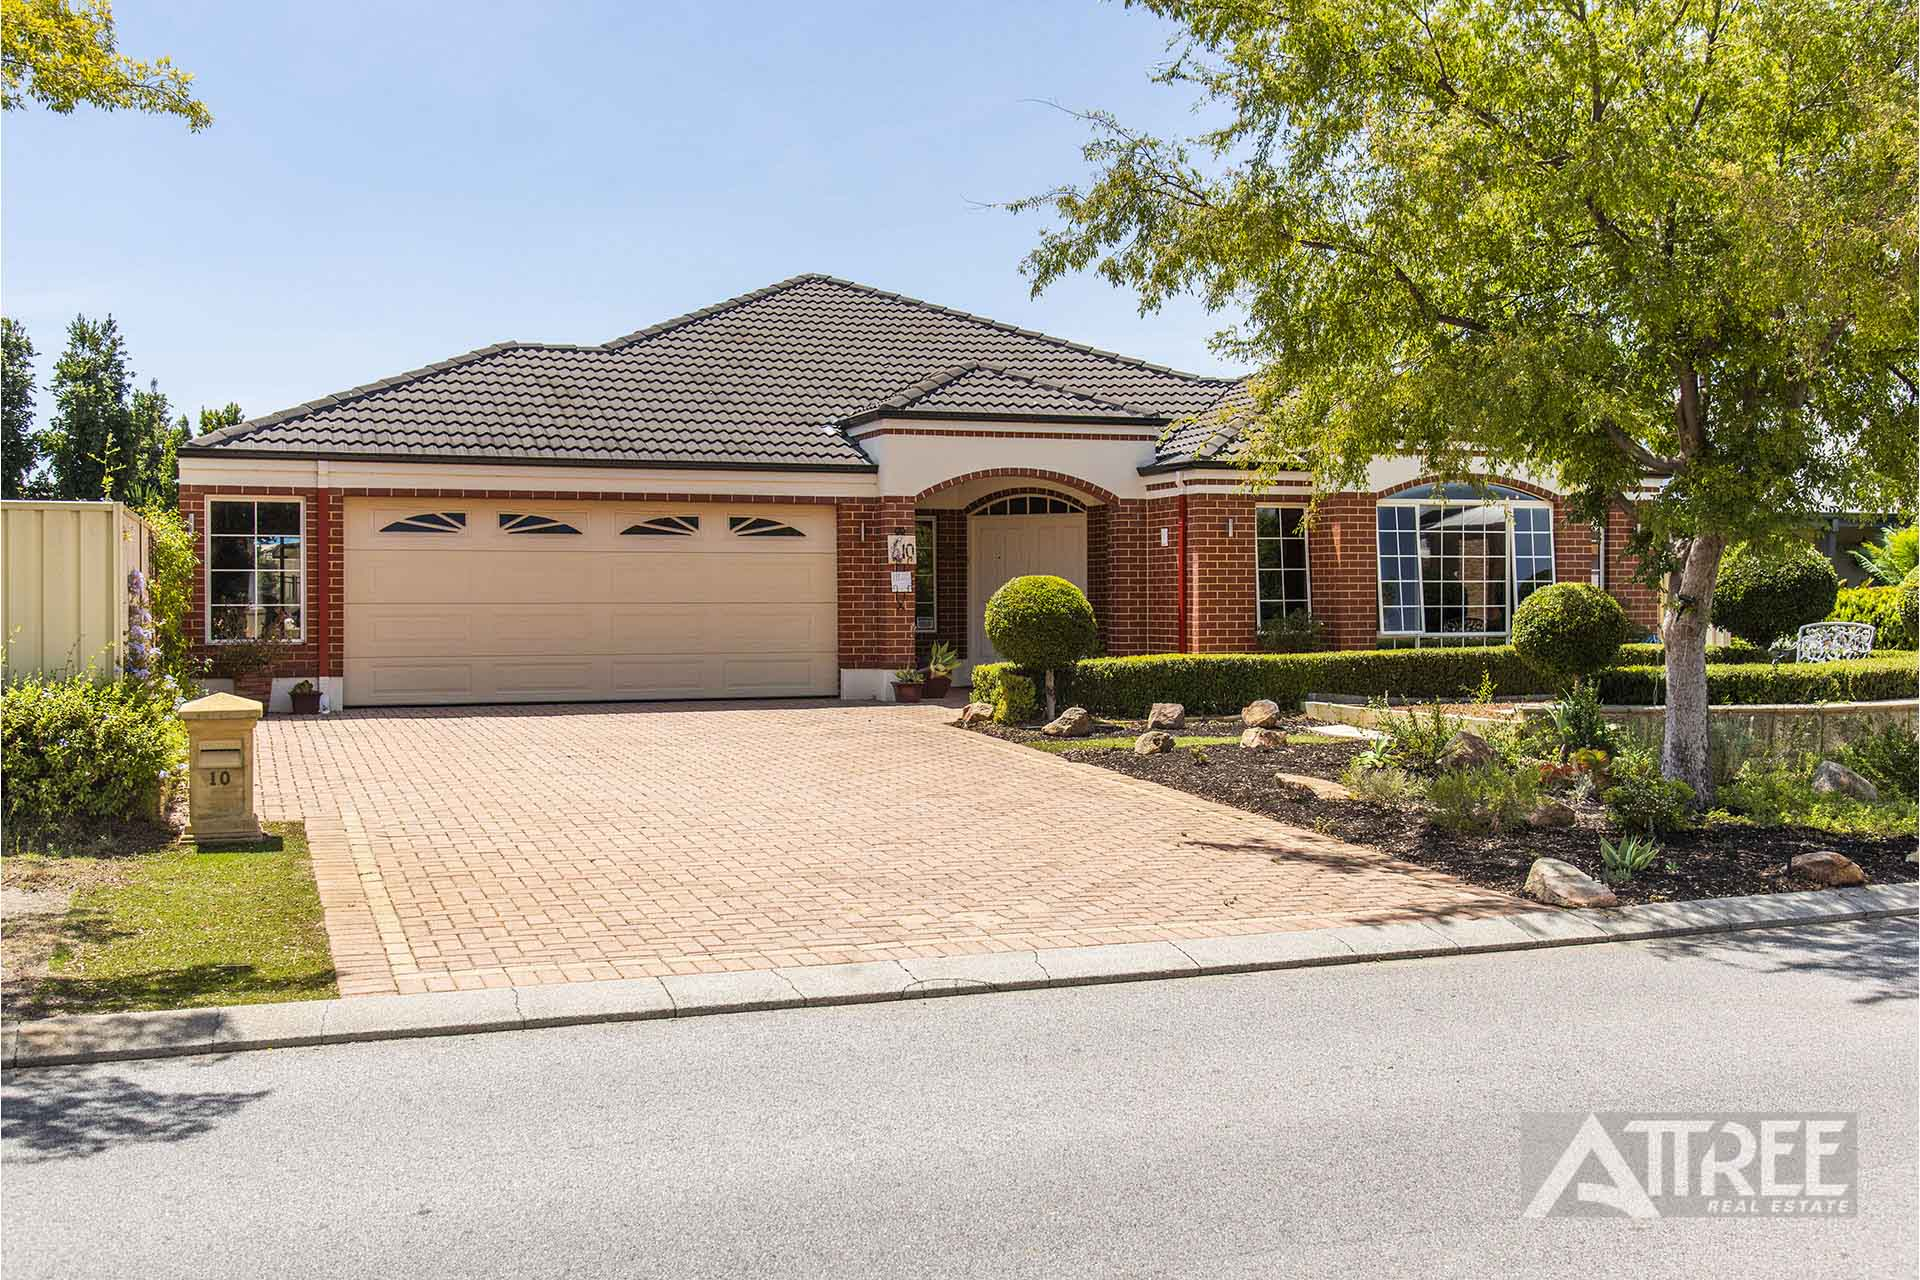 Property for sale in CANNING VALE, 10 Greenwich Parade : Attree Real Estate